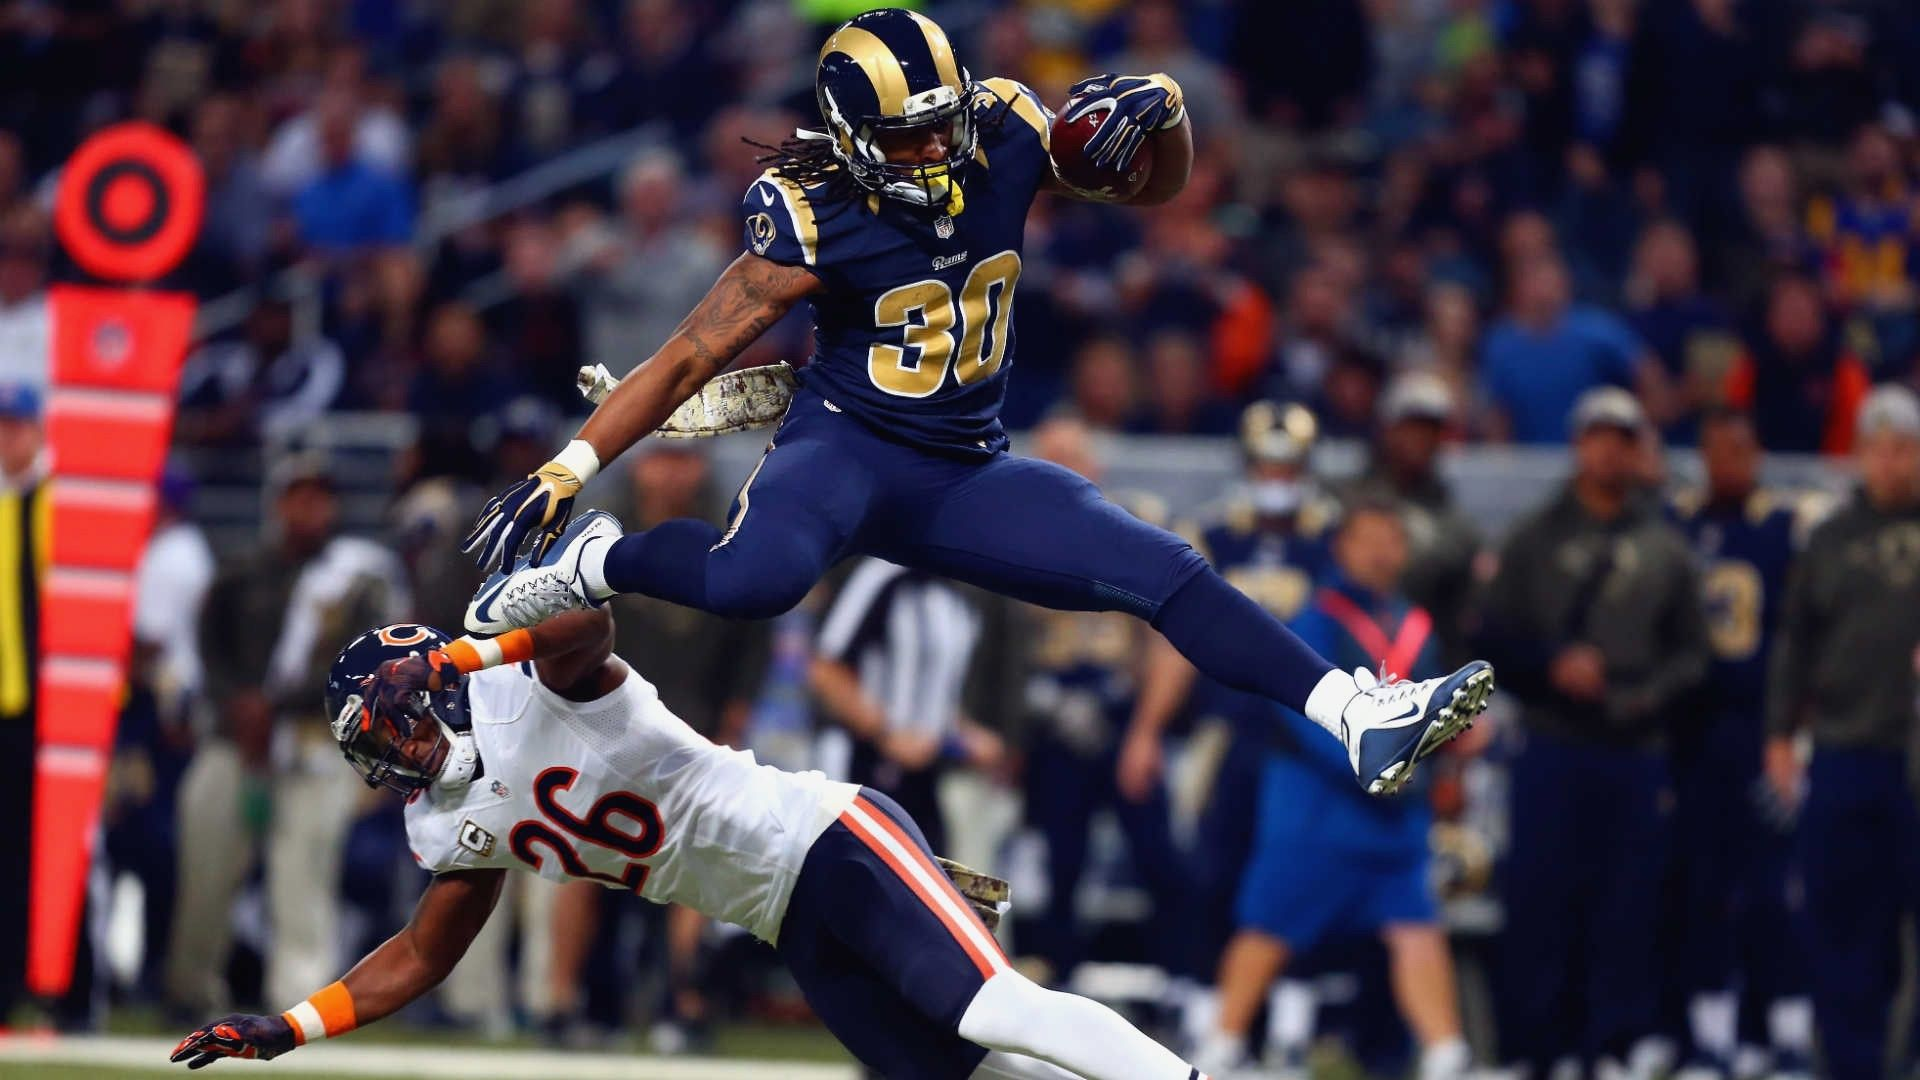 10 New Todd Gurley Rams Wallpaper Full Hd 1080p For Pc Background Ram Wallpaper Todd Gurley Full Hd